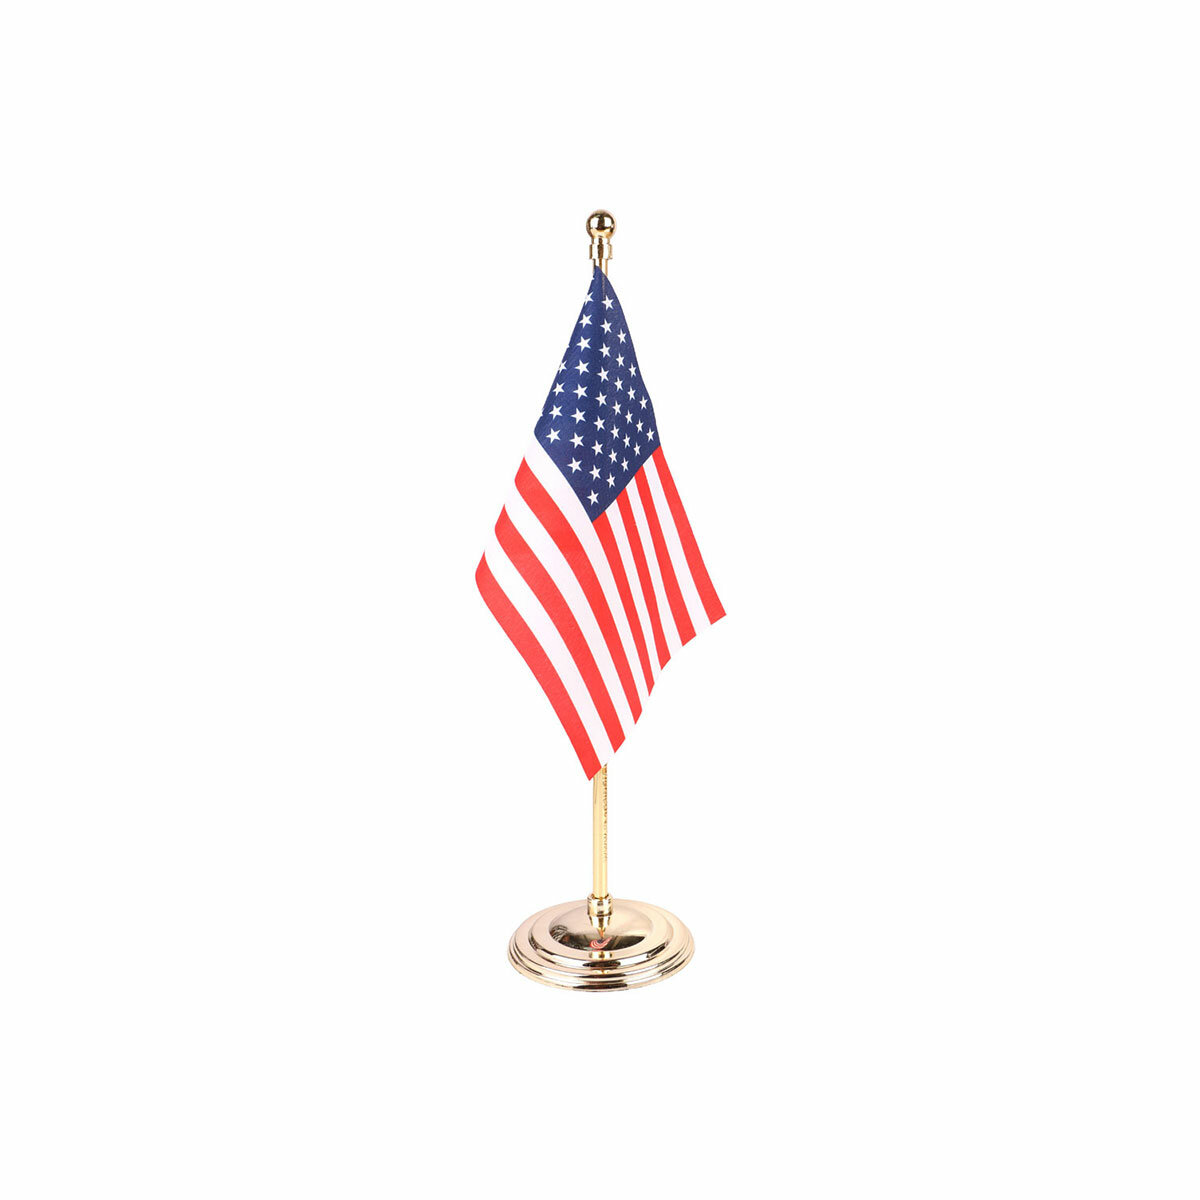 usa table or desk flag with a gold plated plastic stand / base